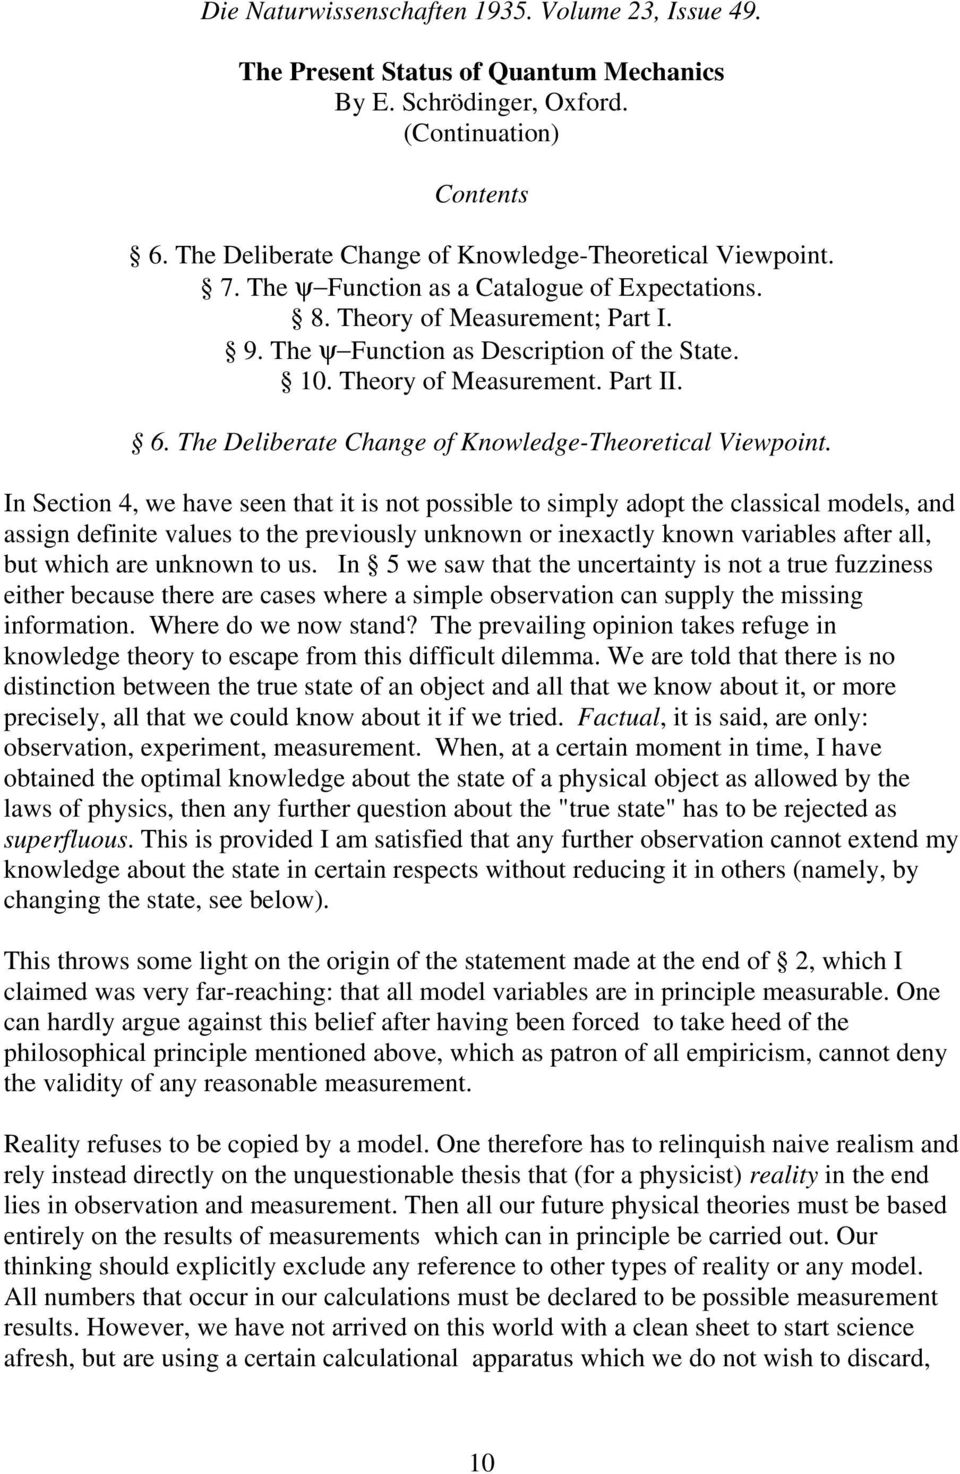 Theory of Measurement. Part II. 6. The Deliberate Change of Knowledge-Theoretical Viewpoint.